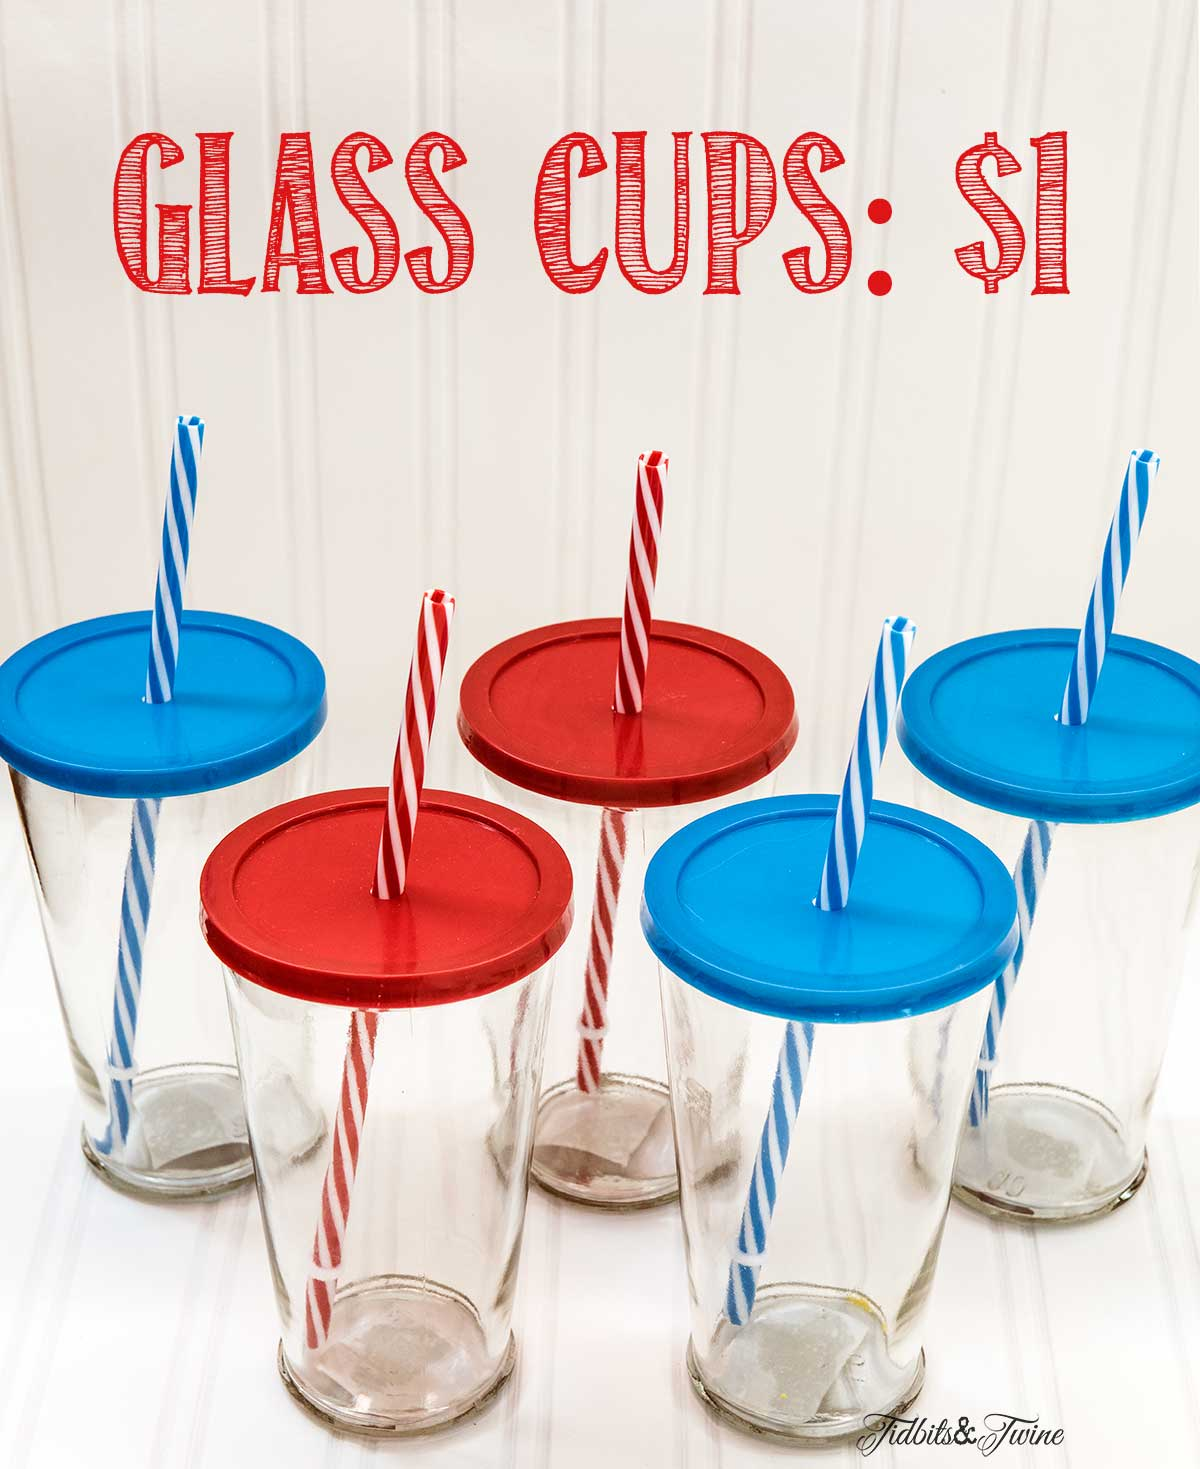 Tidbits&Twine---Tween-Gift-Idea-Cups-Site